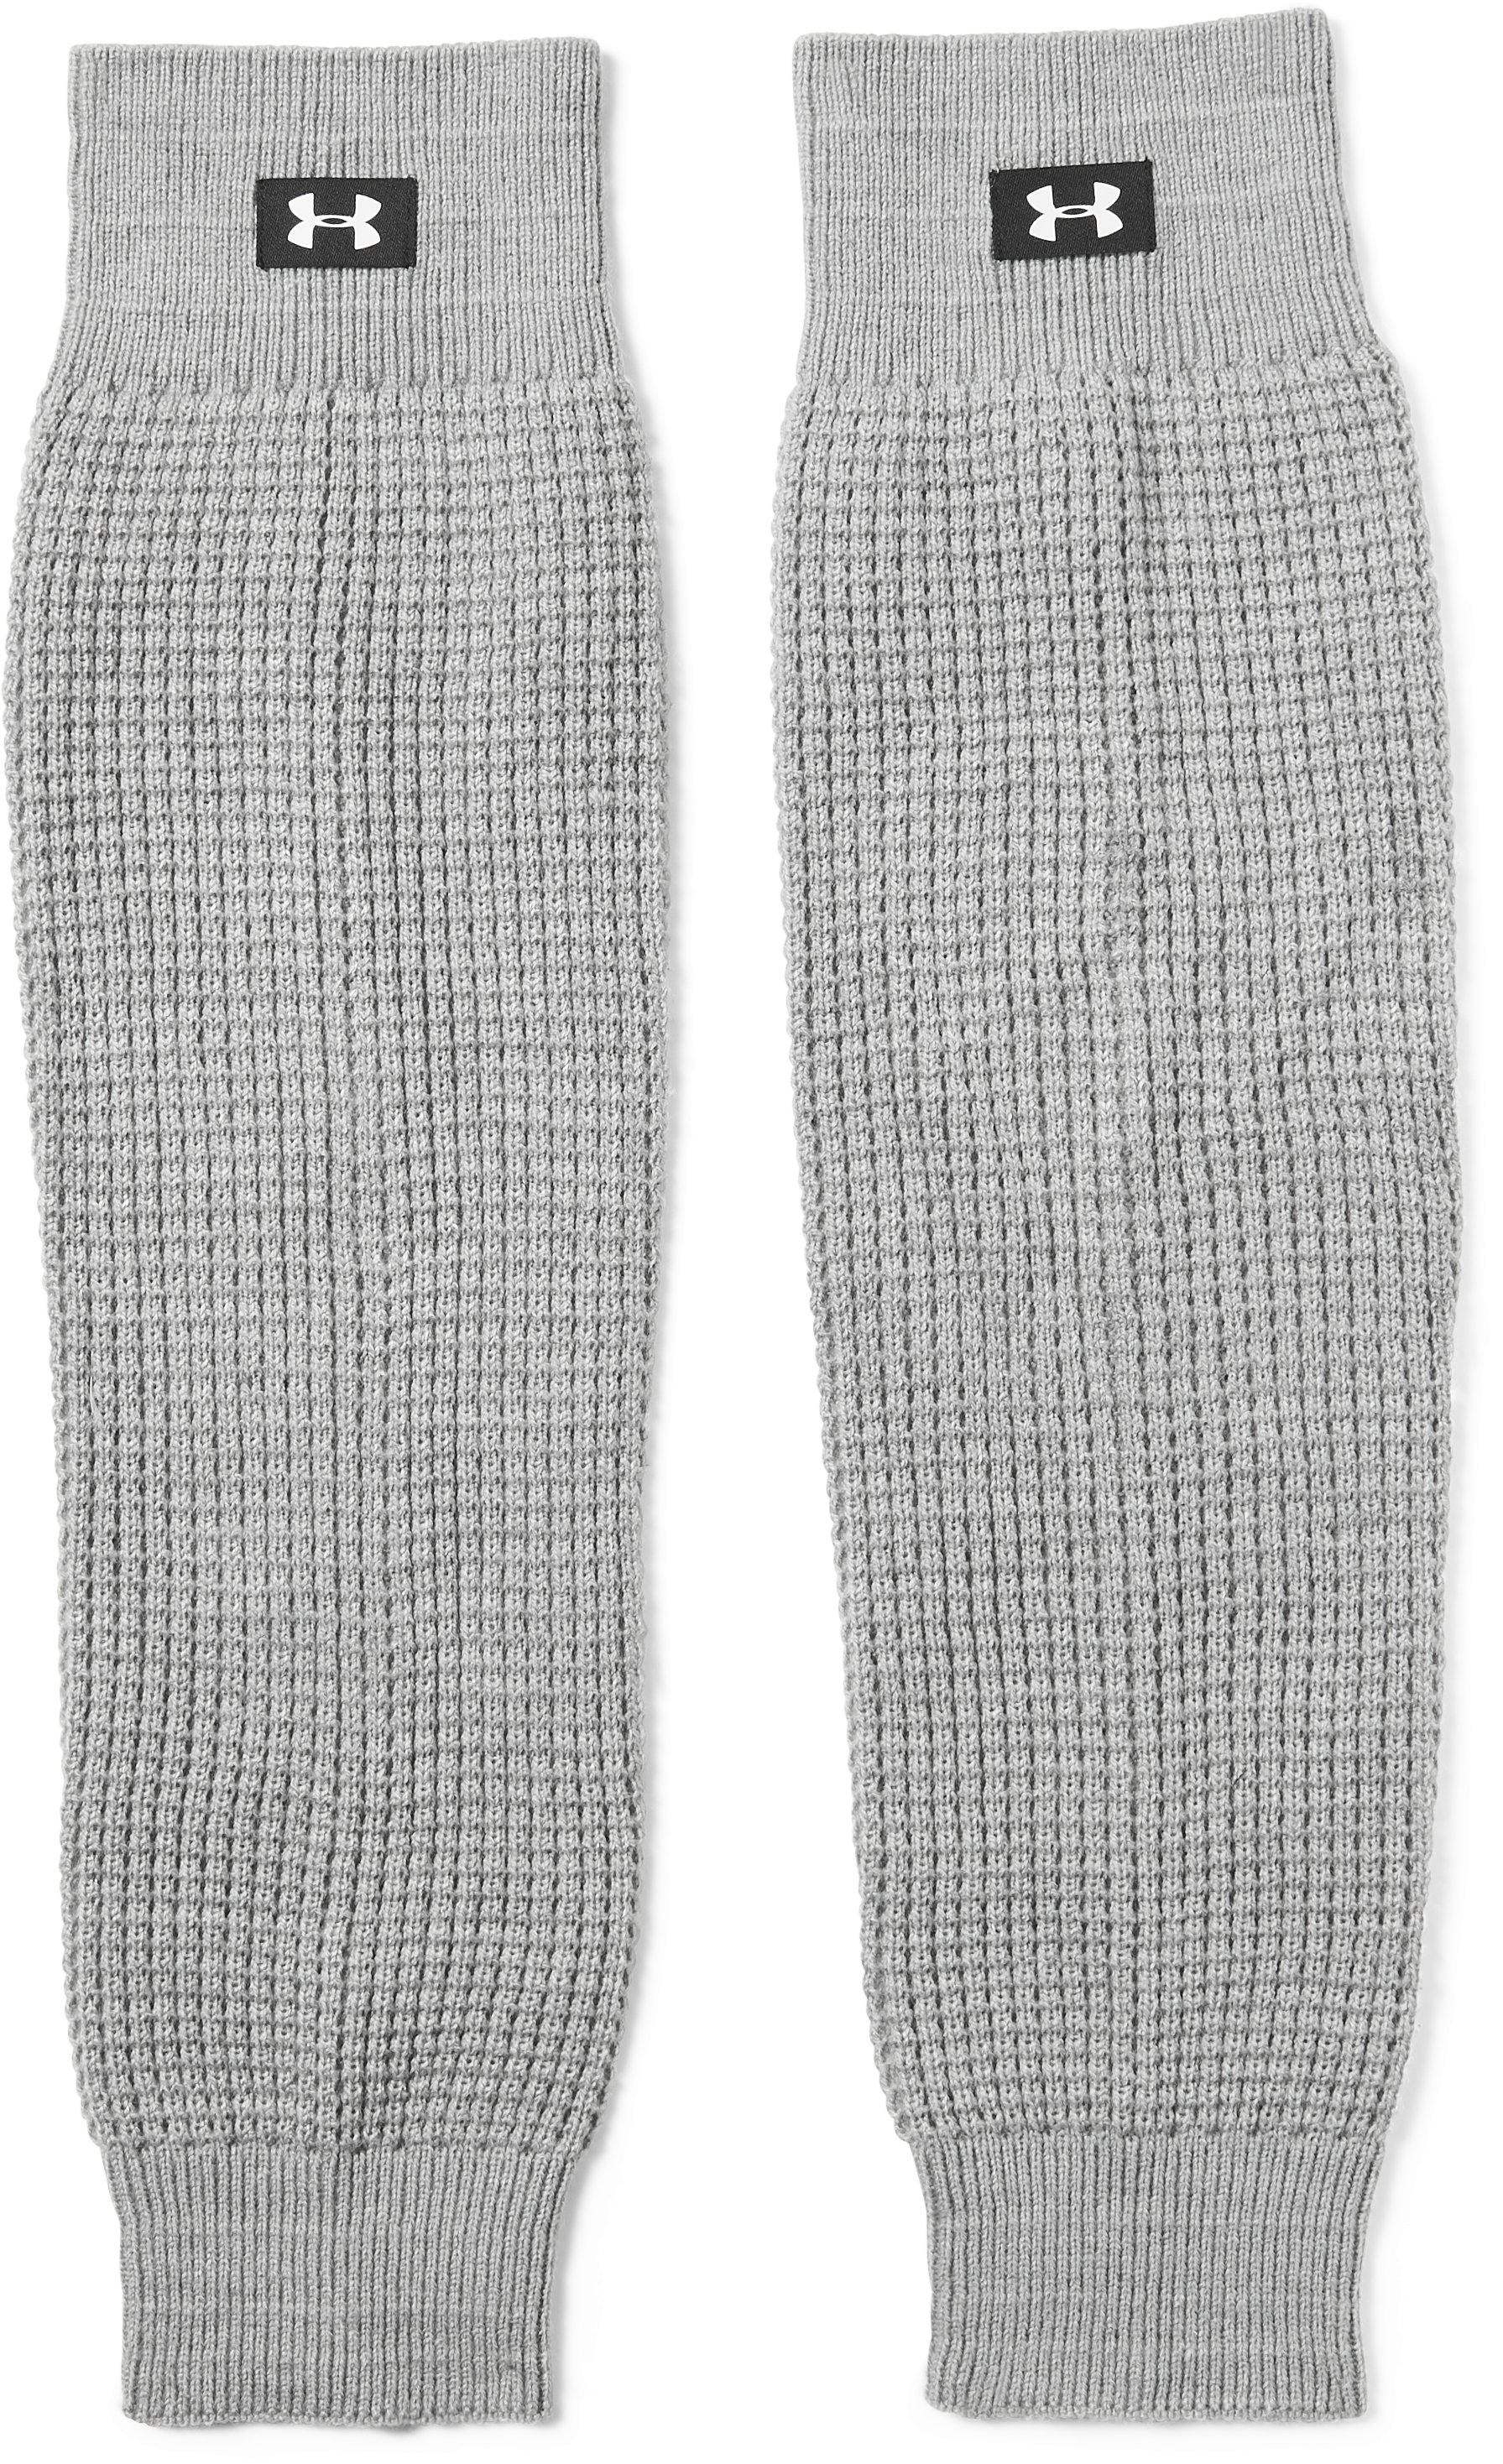 Women's UA Favorite Leg Warmers, True Gray Heather,